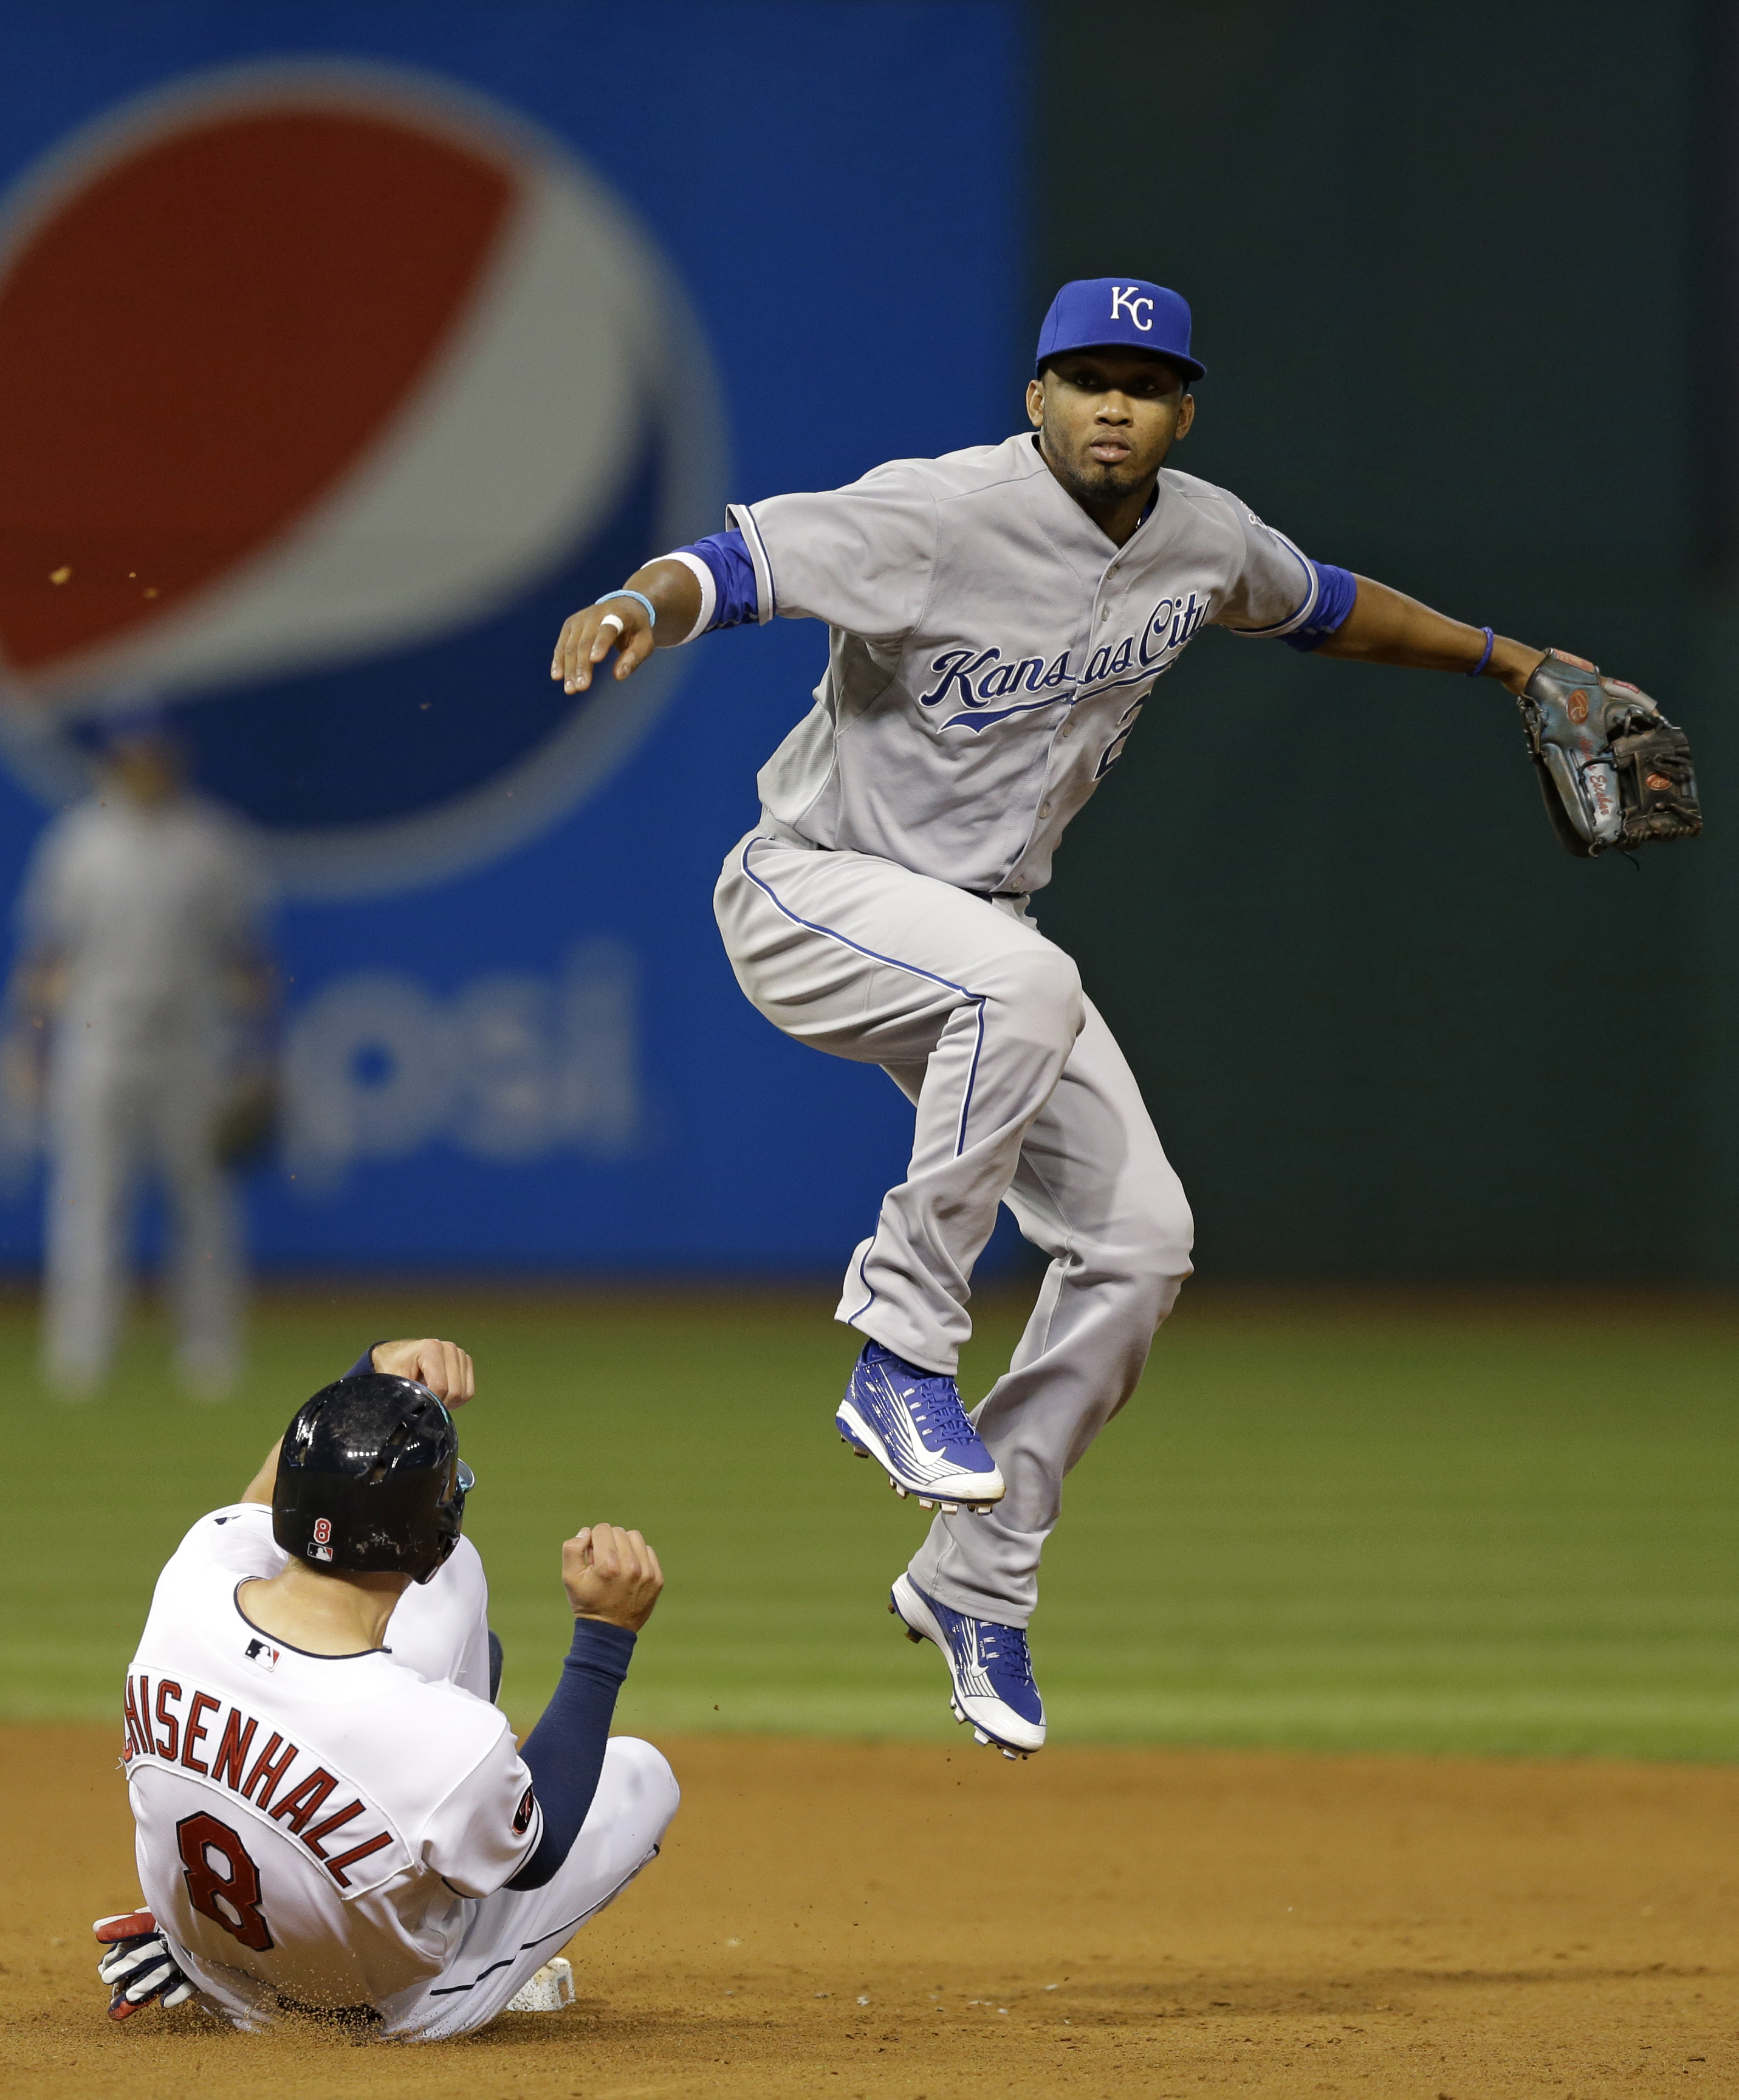 Kansas City Royals' Alcides Escobar looks toward first base after getting Cleveland Indians' Lonnie Chisenhall out at second base in the eighth inning of a baseball game, Wednesday, Sept. 16, 2015, in Cleveland. Abraham Almonte was safe at first base. The